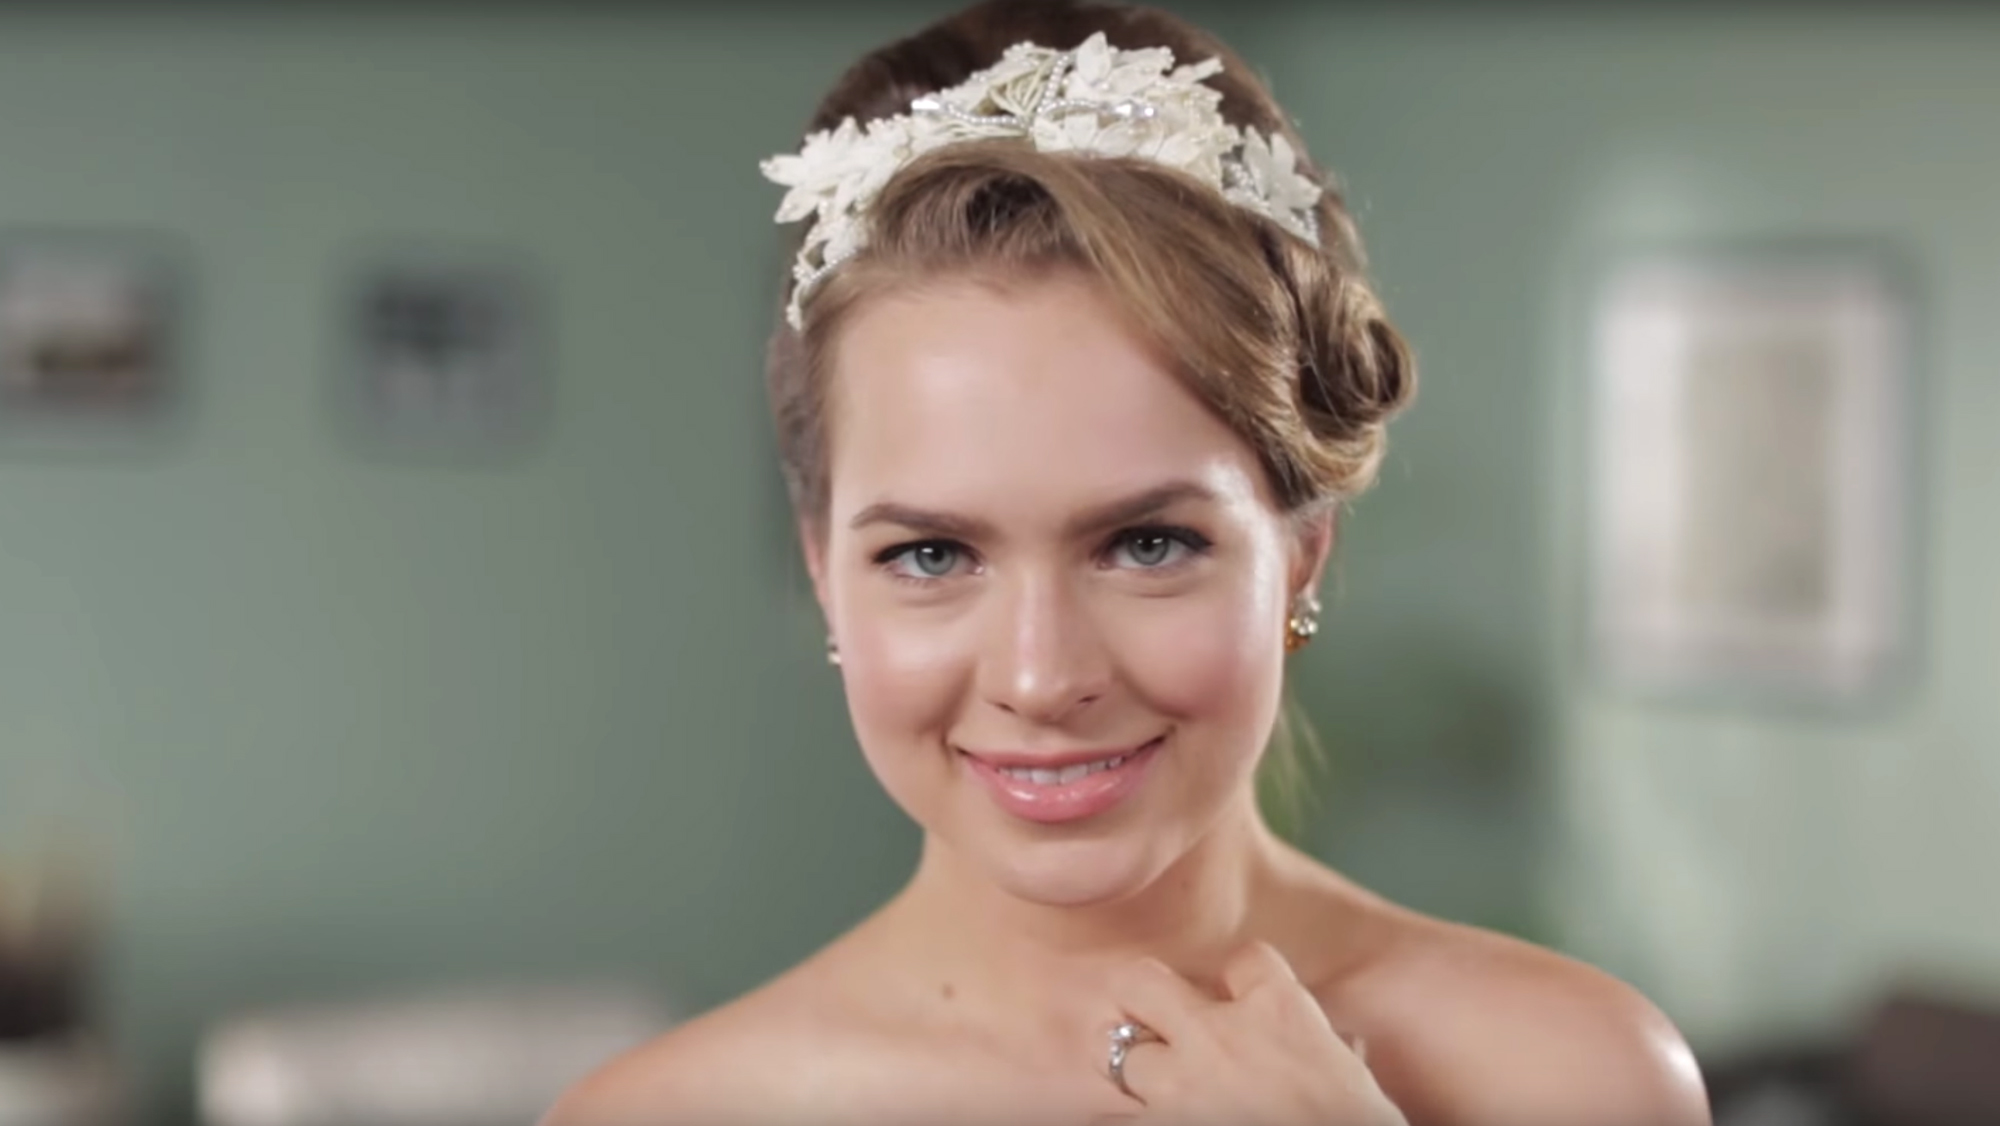 see over 50 years of wedding hairstyles in just 2 minutes